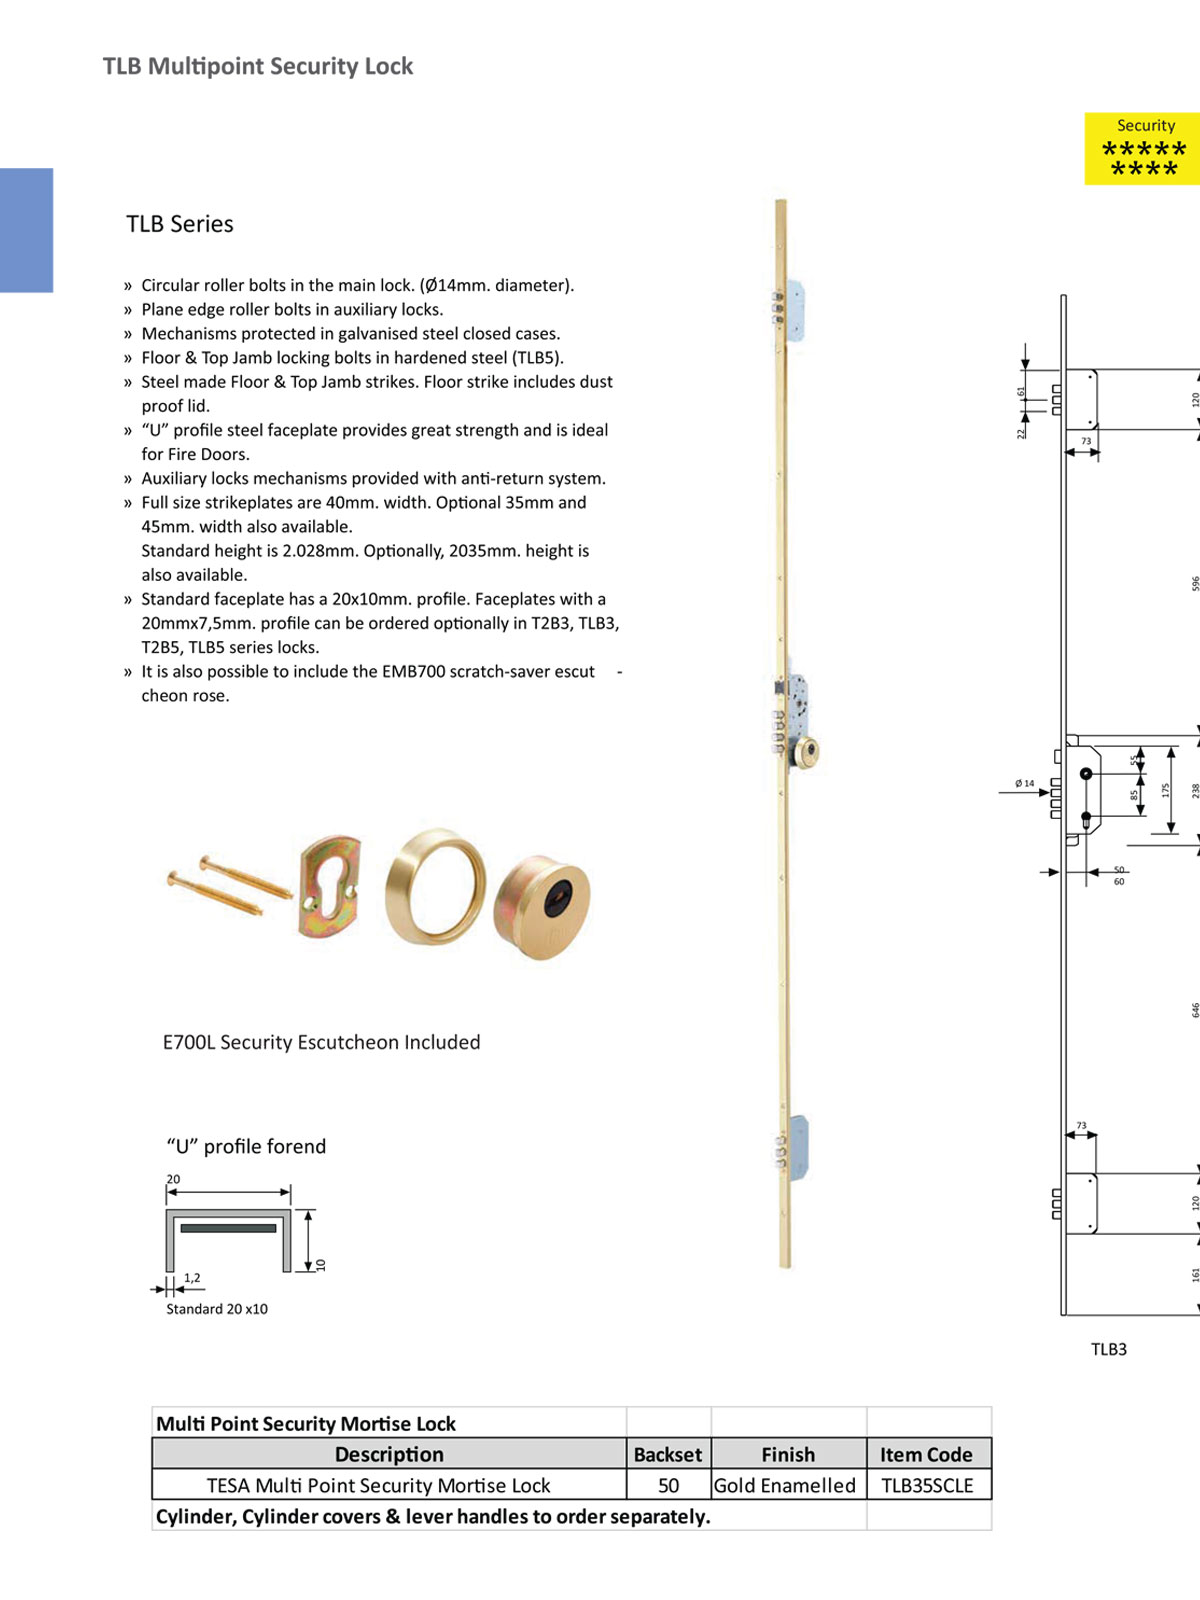 mortise lock, high security mortise lock, mortice lock, security mortise lock, multi point mortise lock, strong lock, motorized multipoint lock, electric controlled lock, deadbolt lock, security lock, Fortress Land Security Company